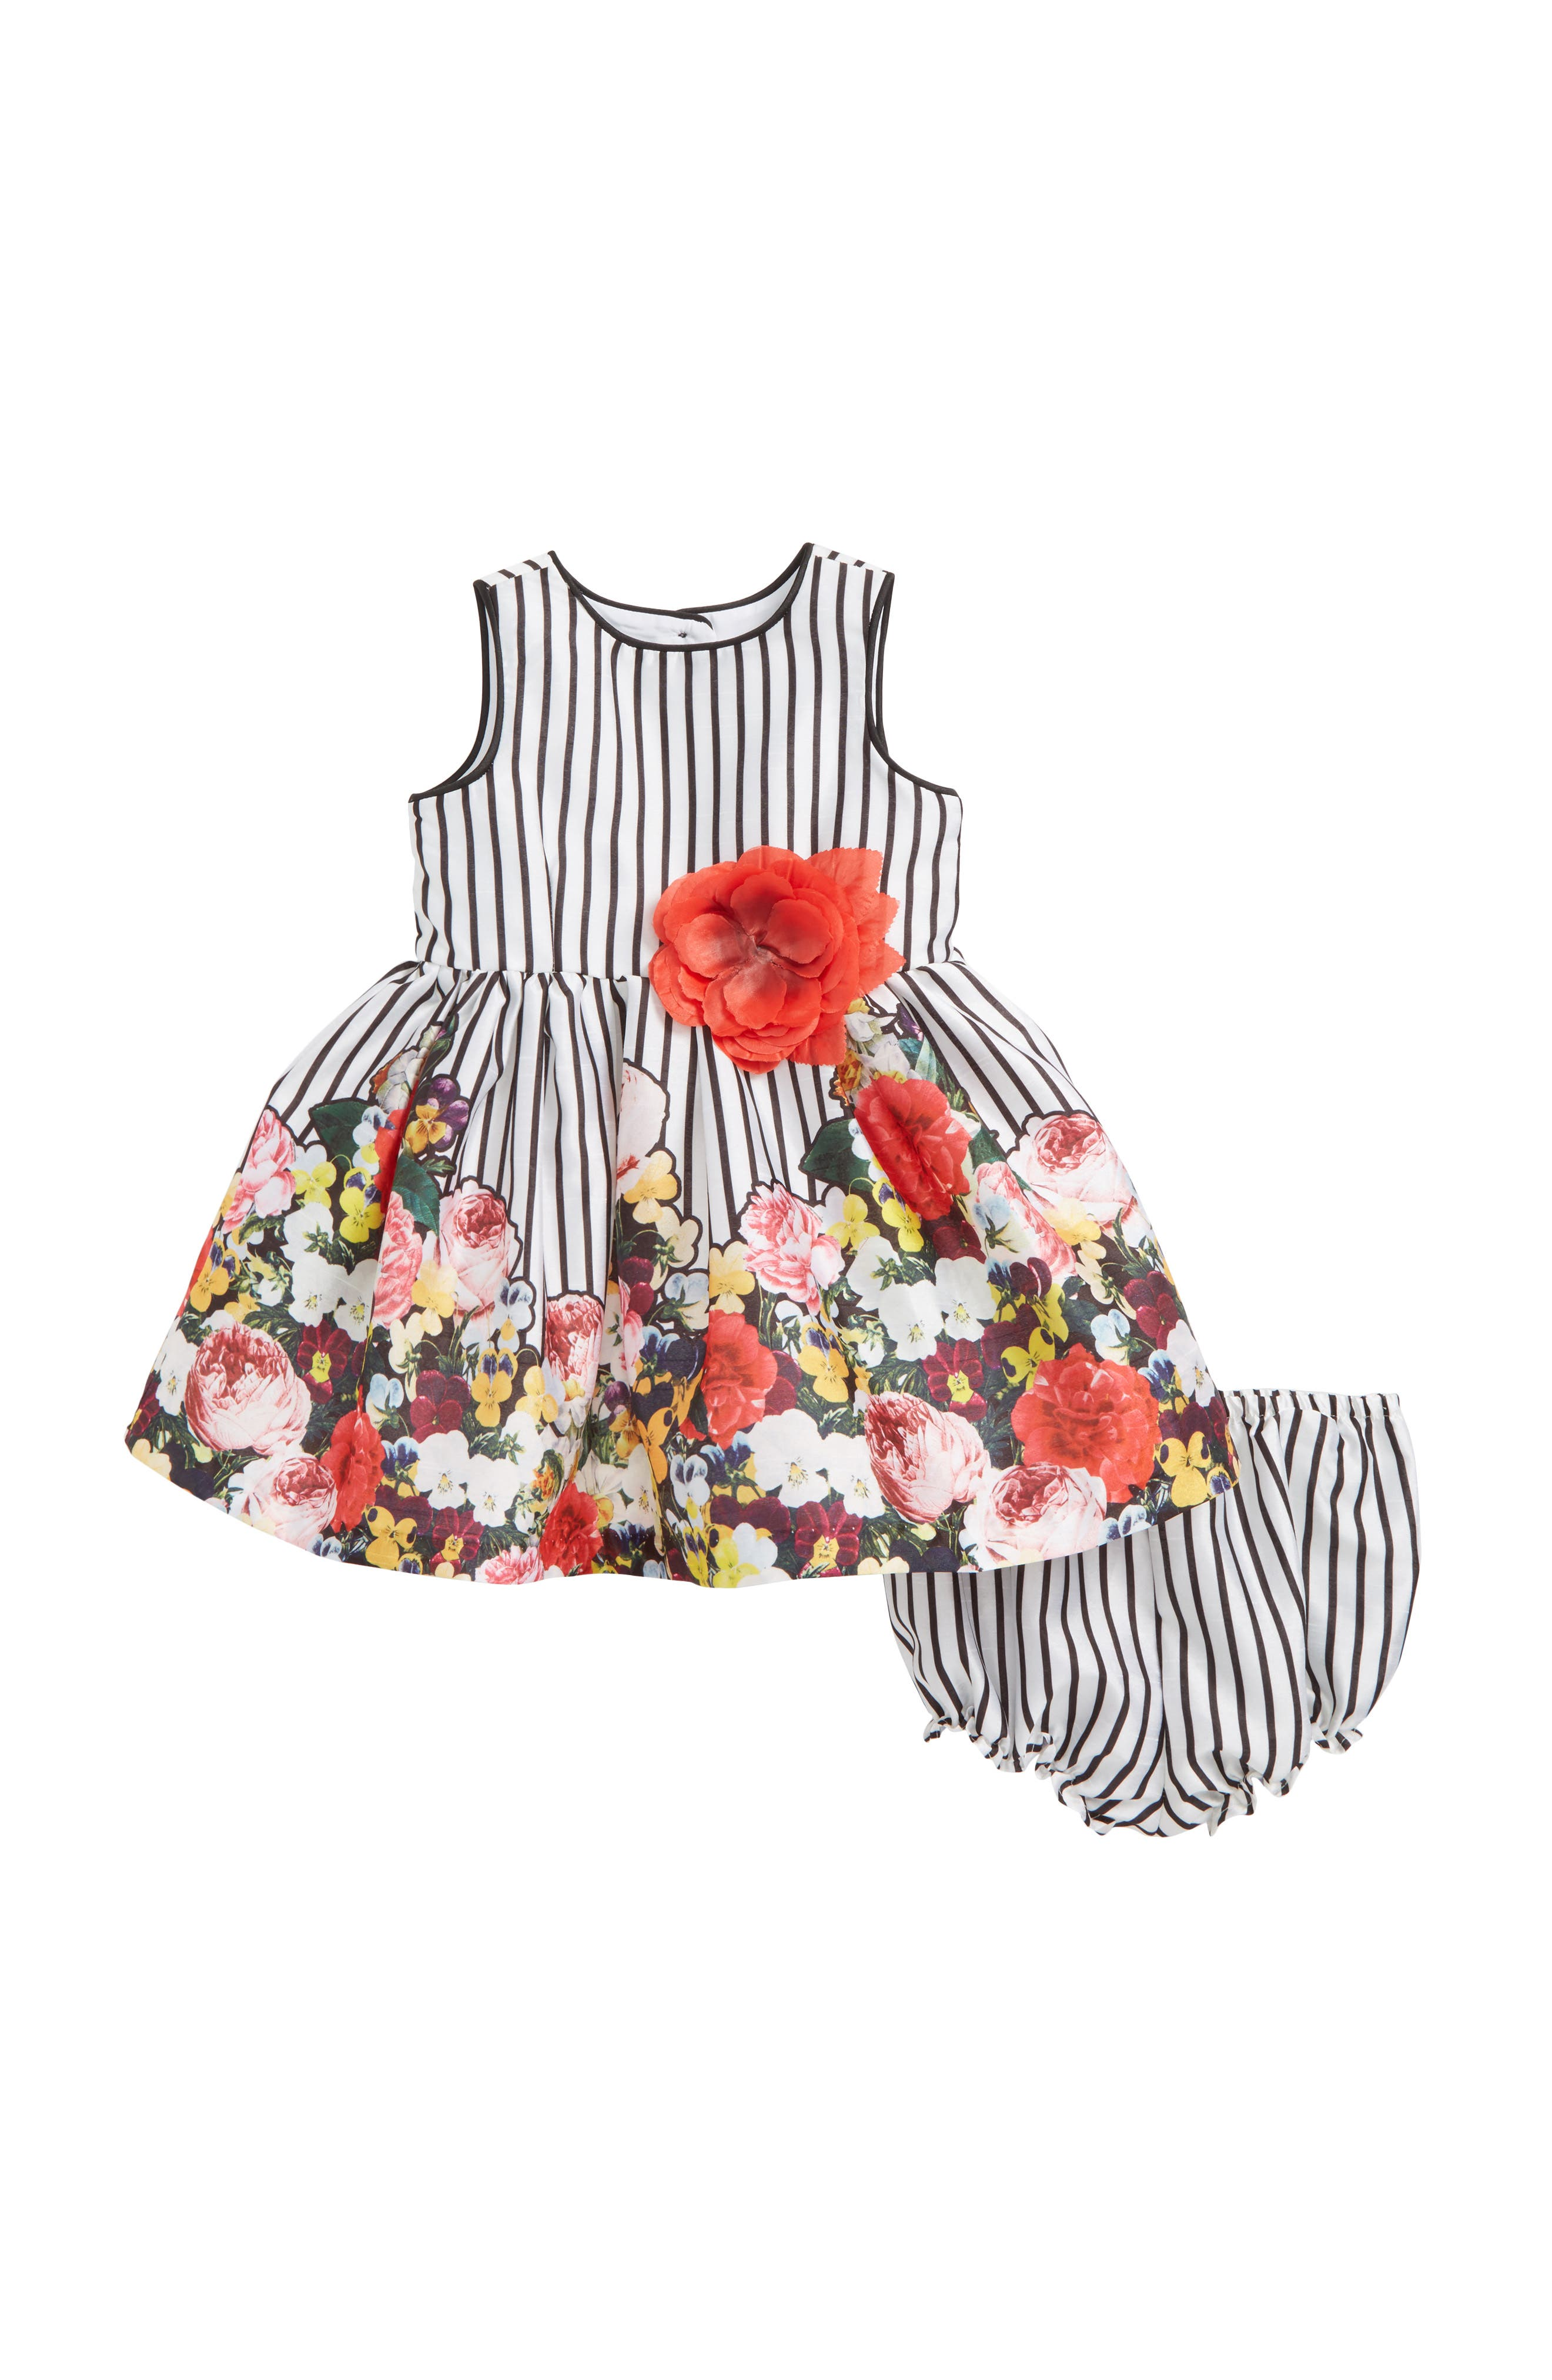 Alternate Image 1 Selected - Pippa & Julie Stripe Floral Fit & Flare Dress (Baby Girls)